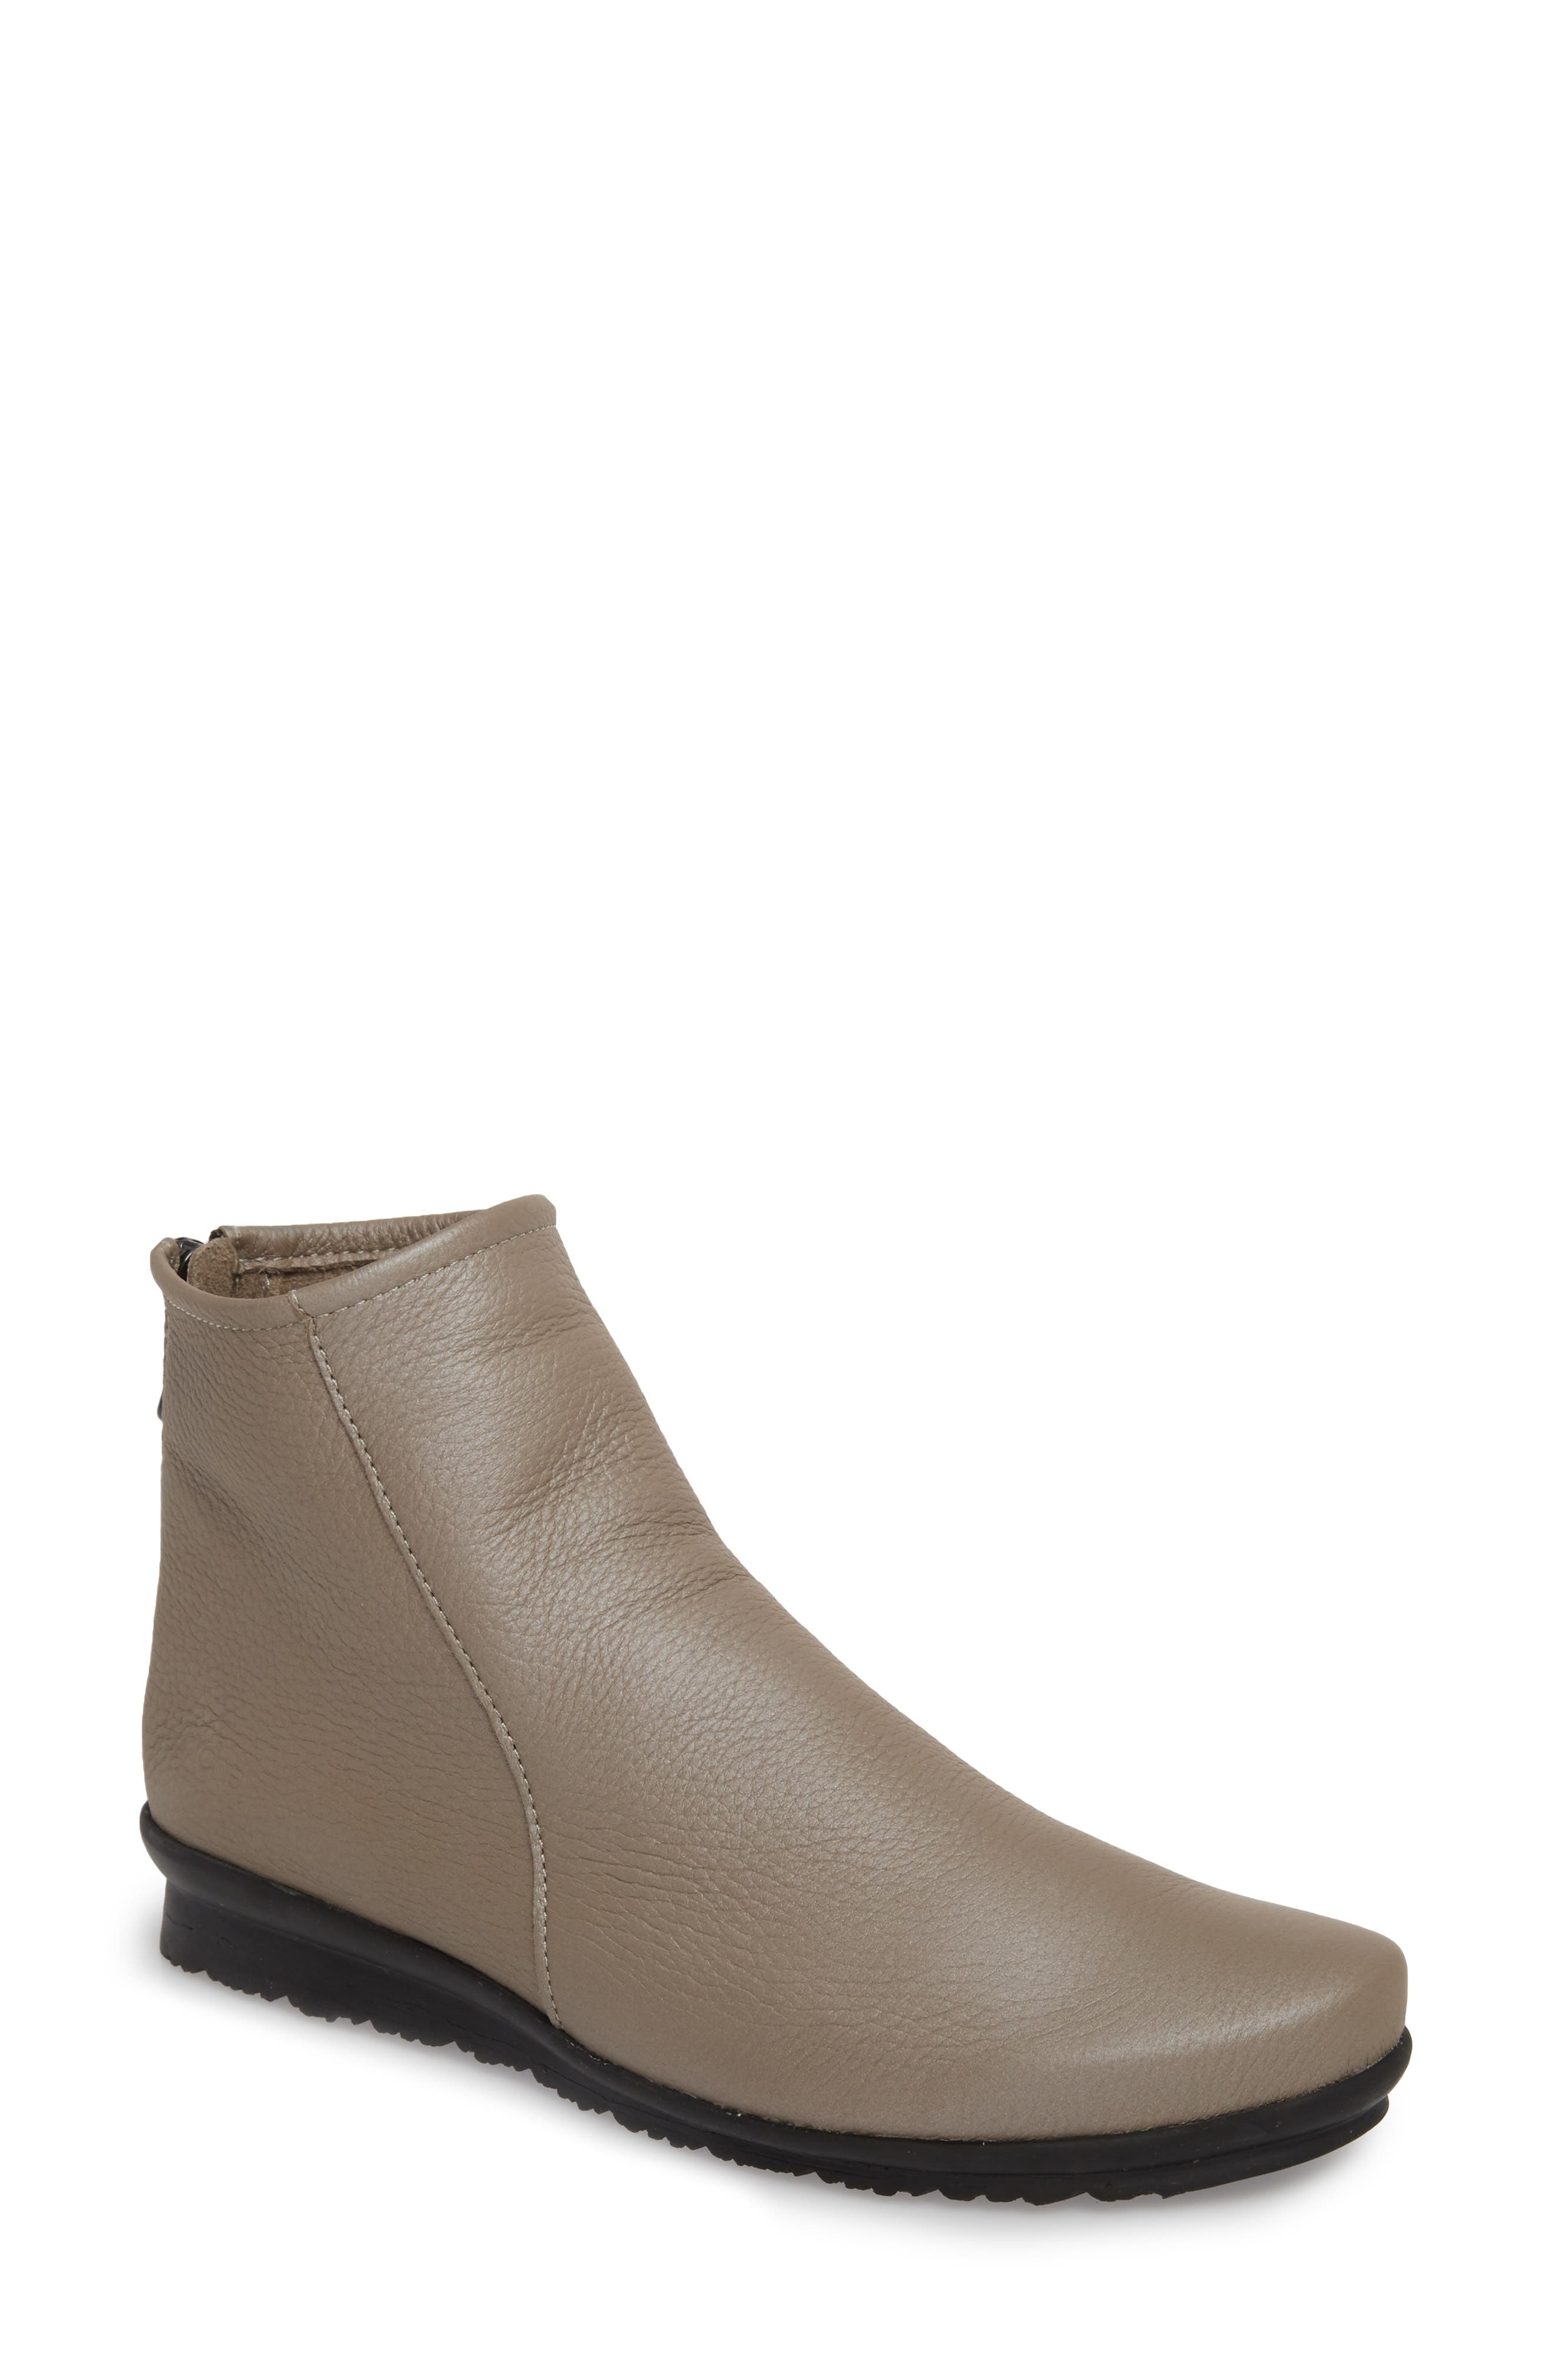 Baryky Bootie,                             Main thumbnail 1, color,                             BEIGE